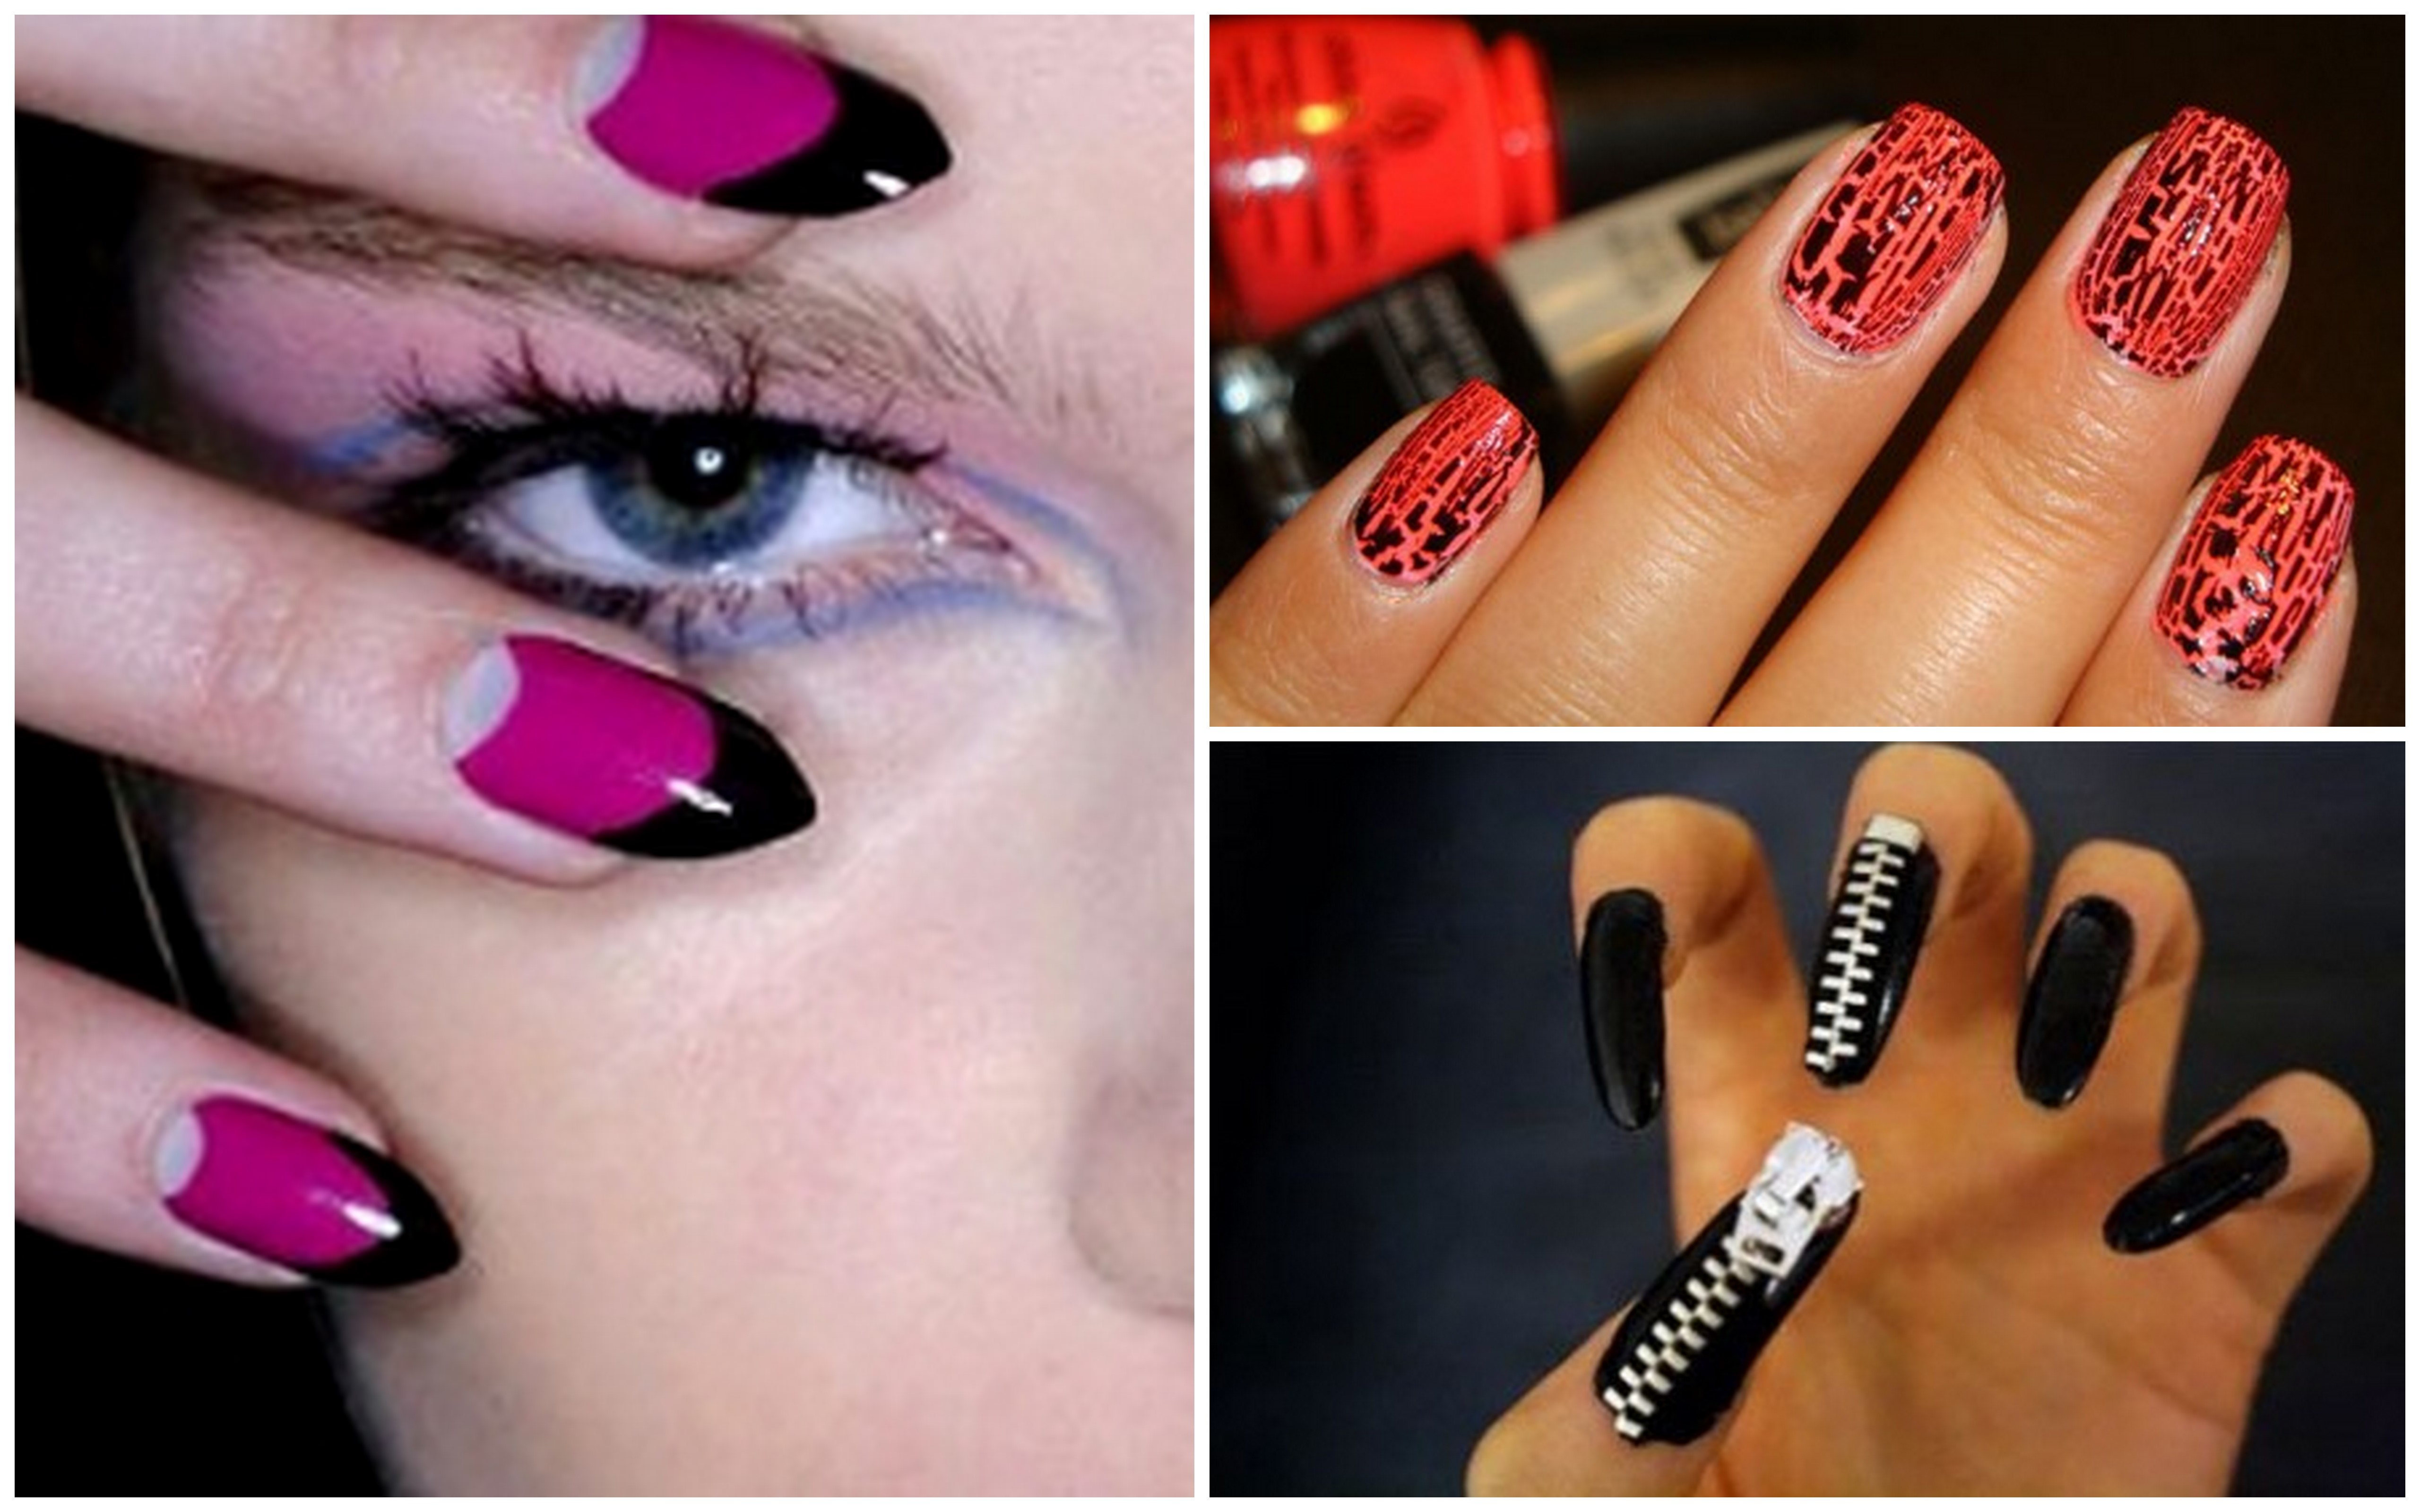 Orange and Black Nail Designs http://fashiontrendalerts.wordpress.com/category/nail-art/